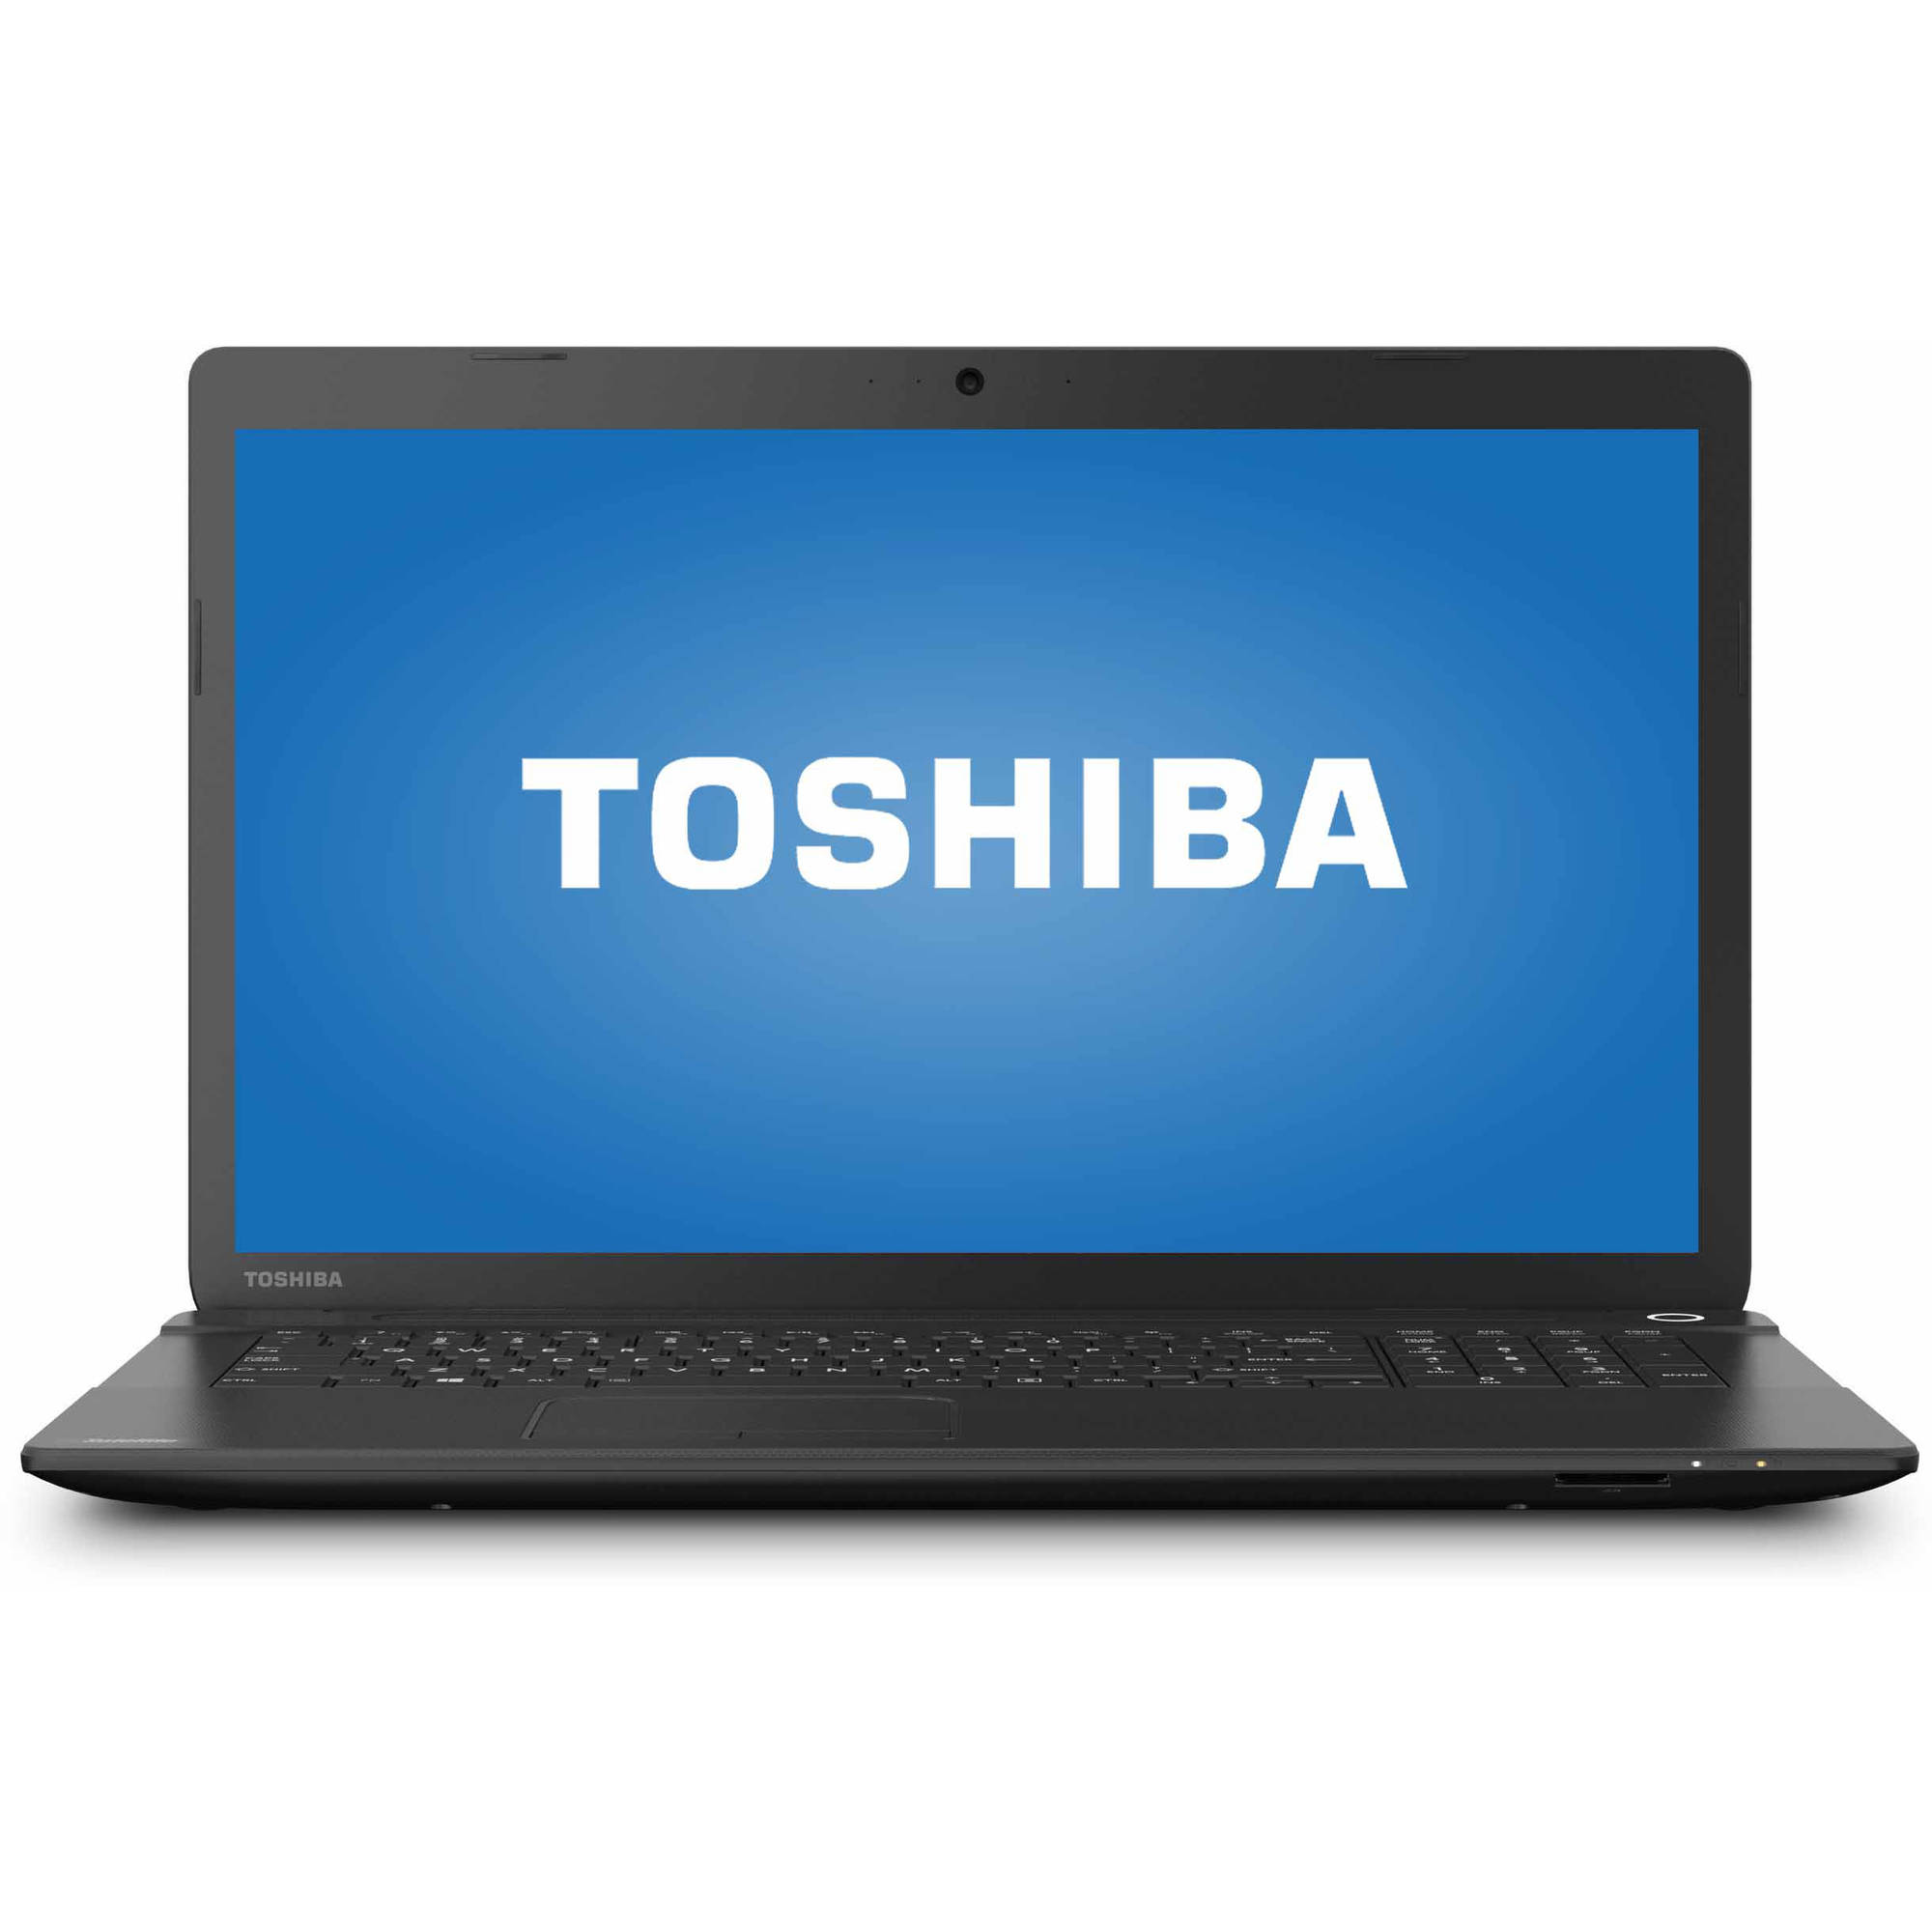 "Toshiba Jet Black 17.3"" Satellite C75D-B7320 Laptop PC with AMD A8-6410 Quad-Core Processor, 6GB Memory, 750GB Hard Drive and Windows 10 Home"